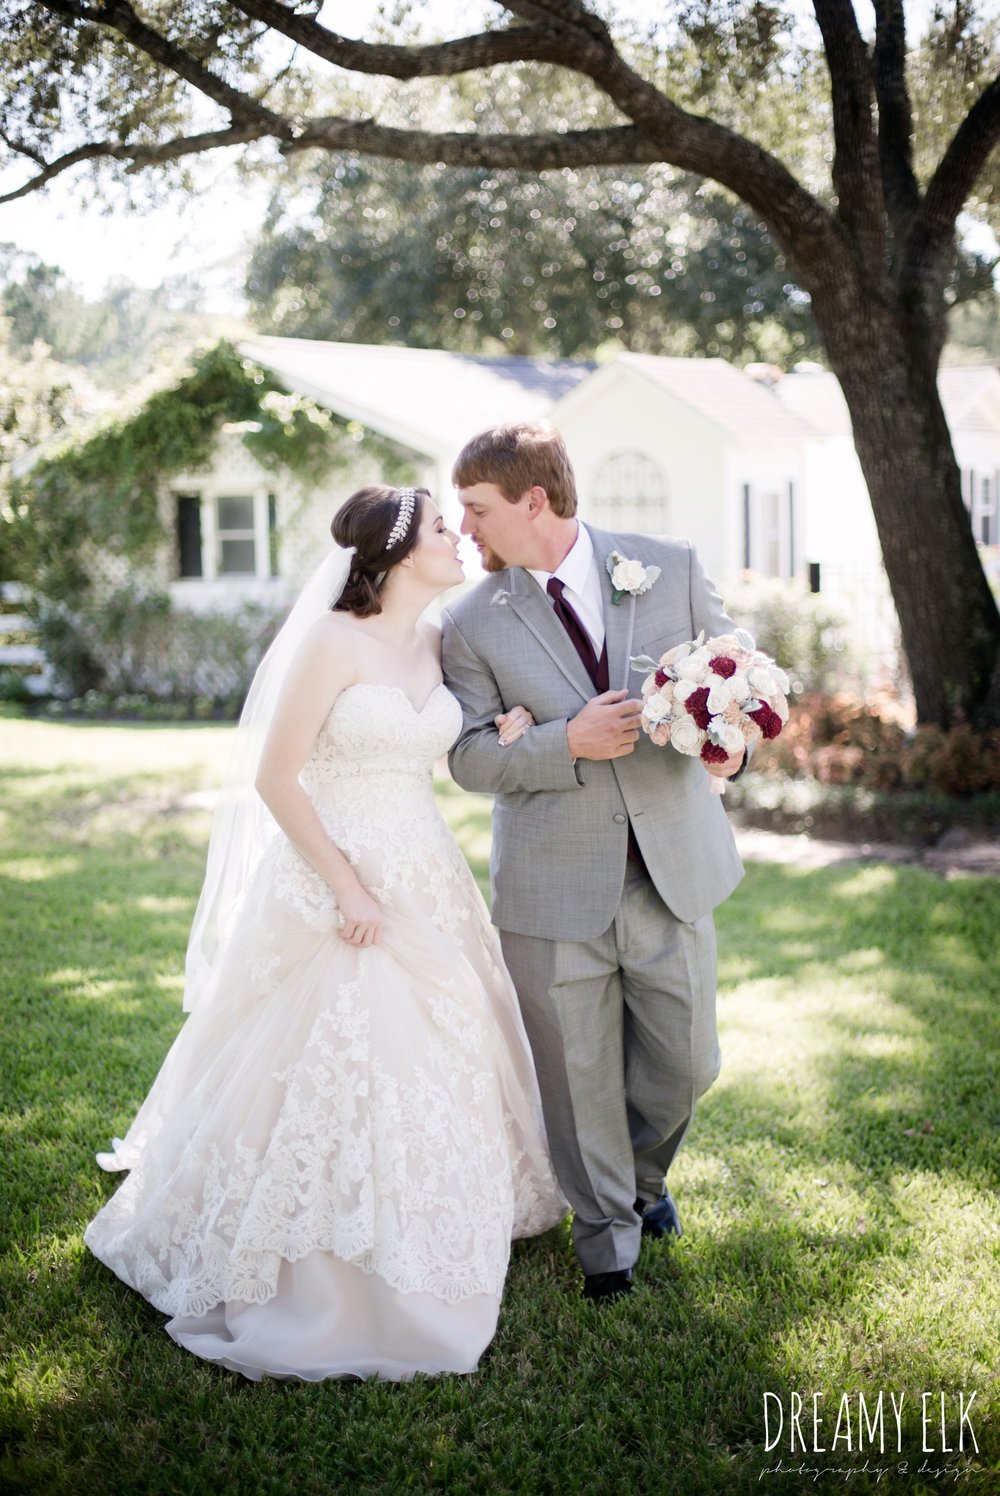 bride, sweetheart lace ballgown wedding dress, oyester underlay, lace trimmed veil, rhinestone headpiece, groom, men's wearhouse gray tux with maroon vest and tie, september wedding photo, ashelynn manor, magnolia, texas, austin texas wedding photographer {dreamy elk photography and design}